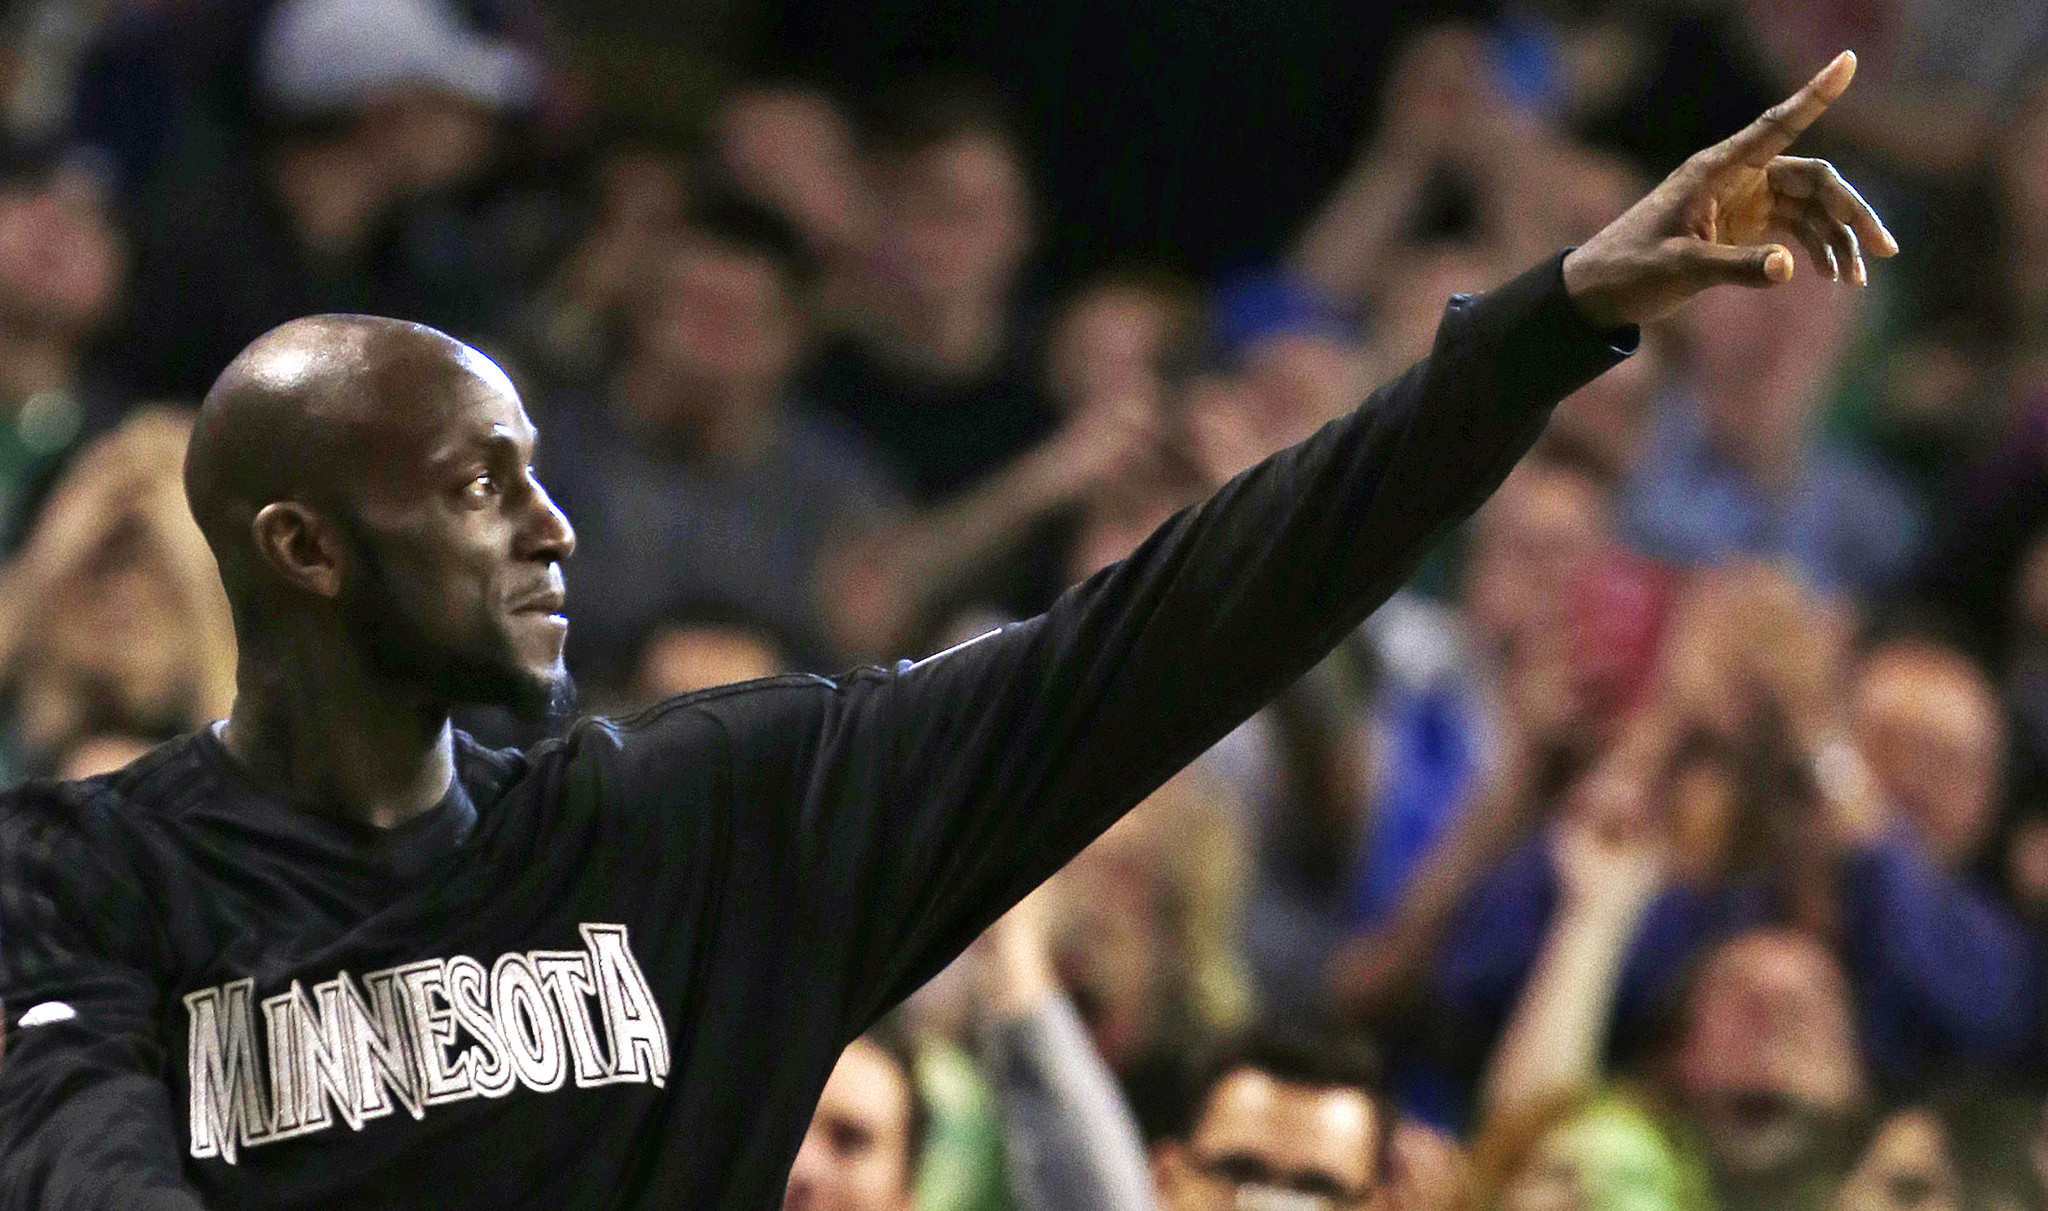 Hall of Fame inductee Kevin Garnett is absolutely not on good terms with Timberwolves owner Glen Taylor